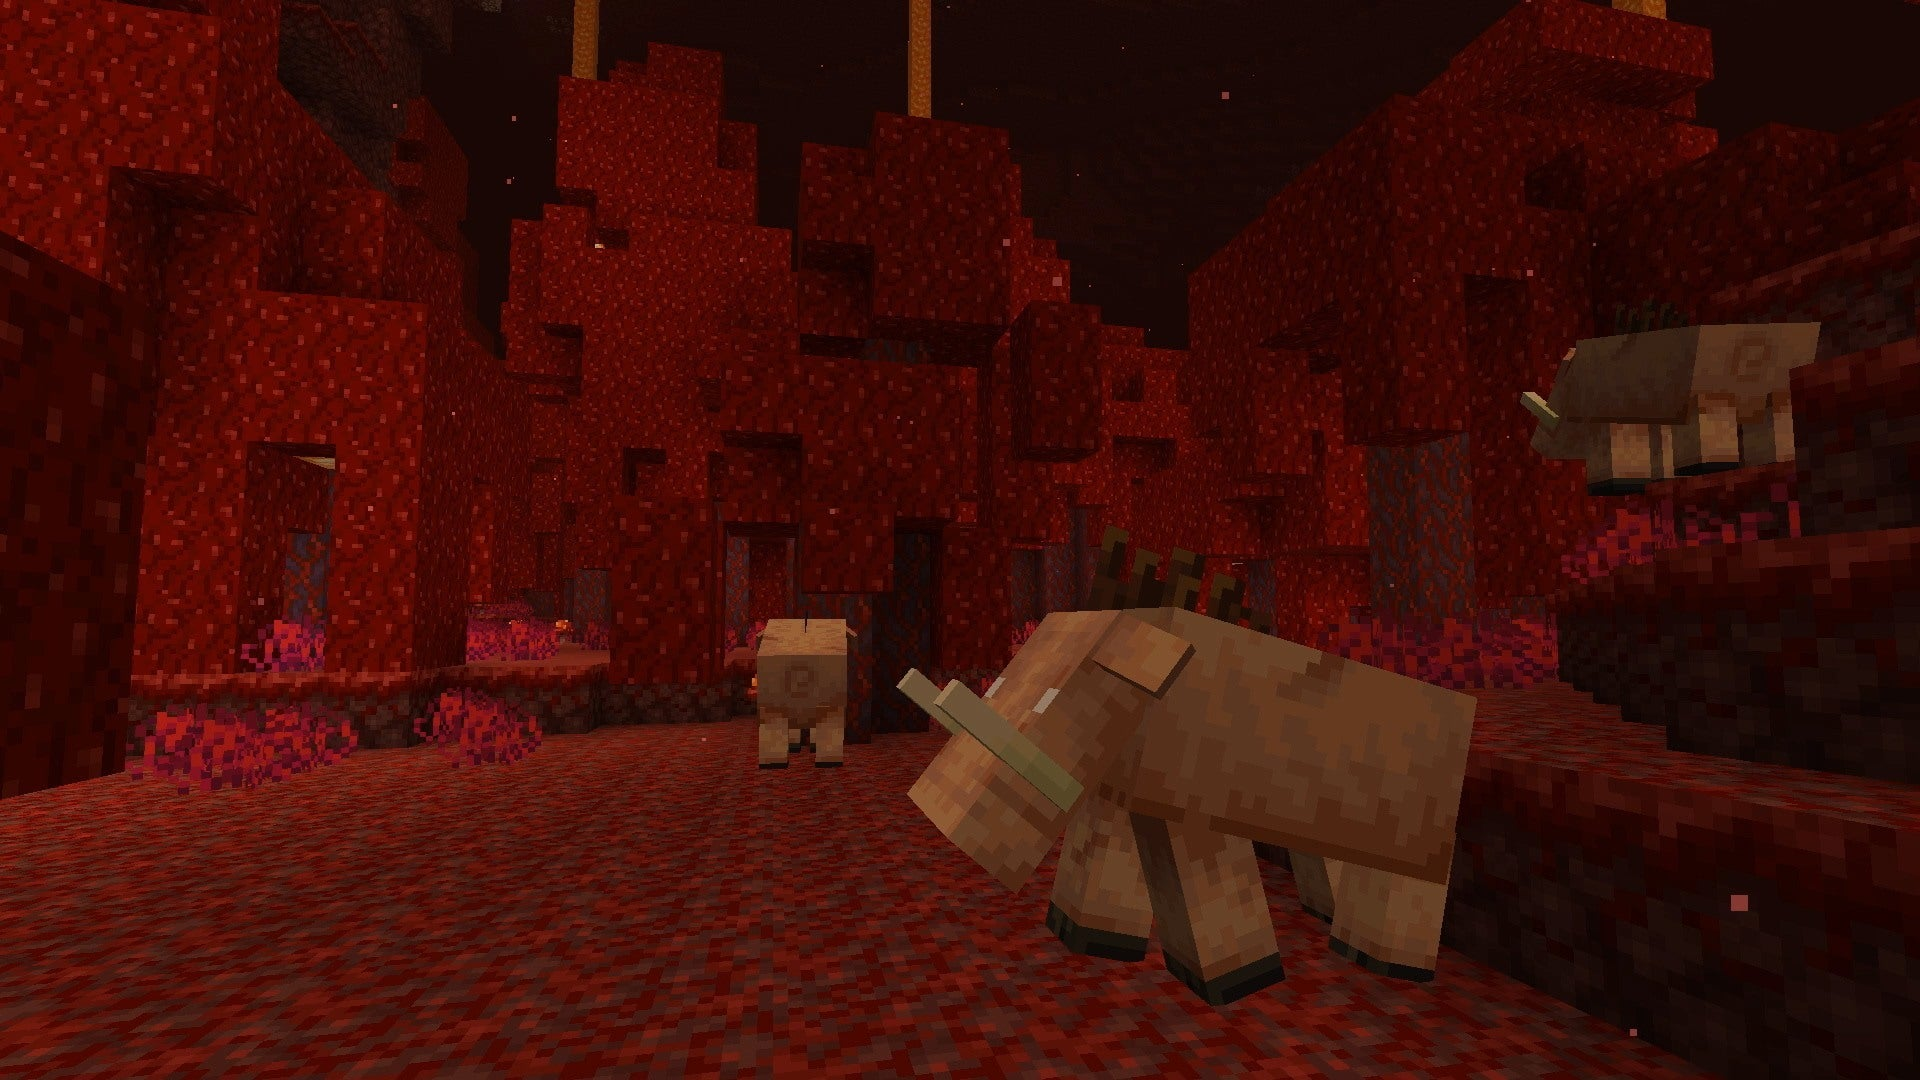 Two Minecraft Hoglin in the Nether.